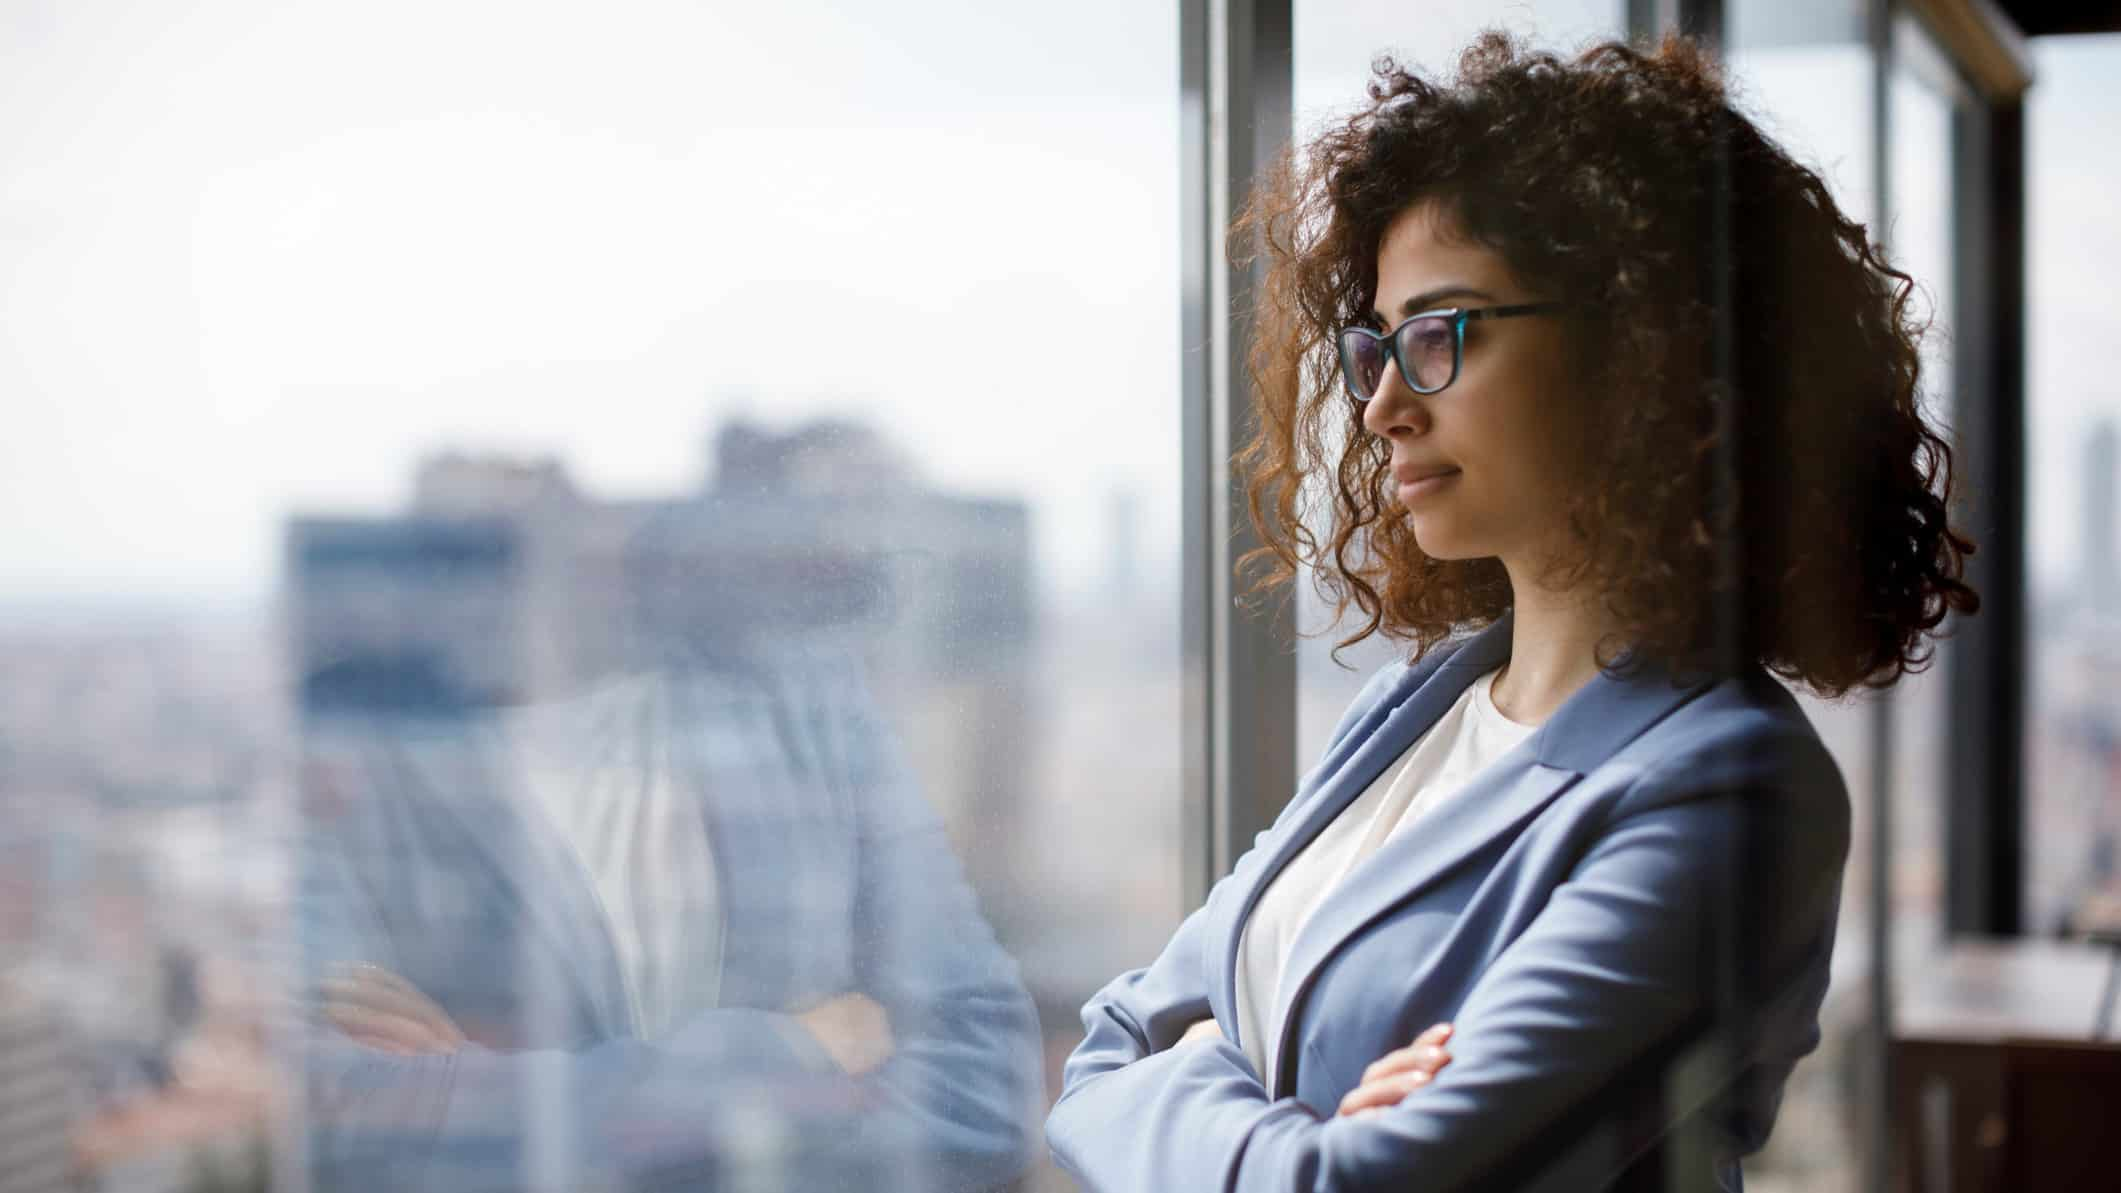 Young Female investor gazes out window at cityscape